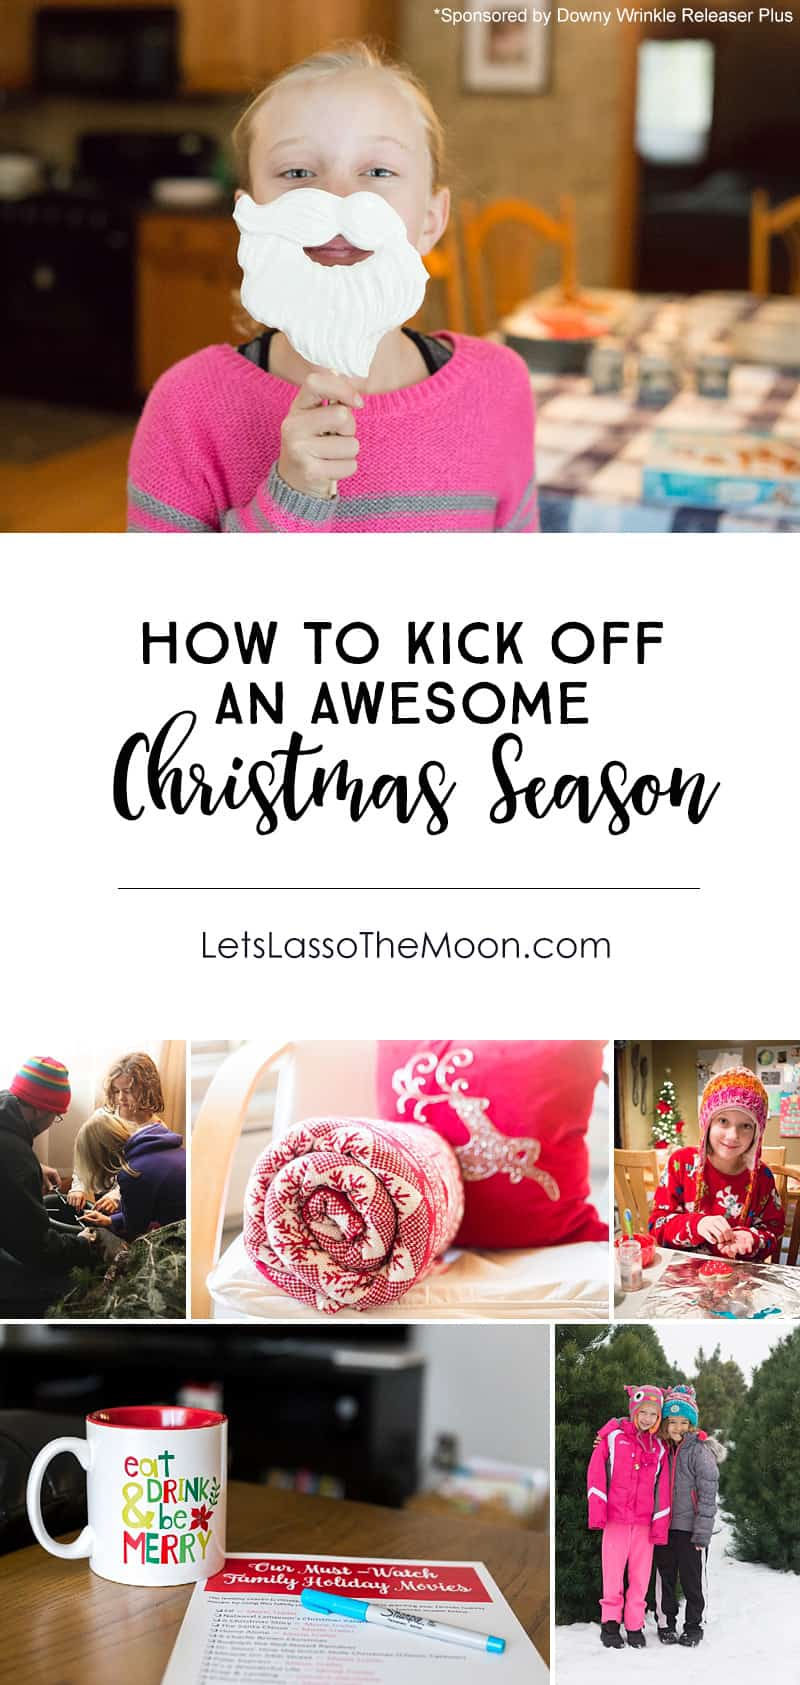 Wonderful family holiday traditions for kickstarting the Christmas season. *Love the movie list in this post!